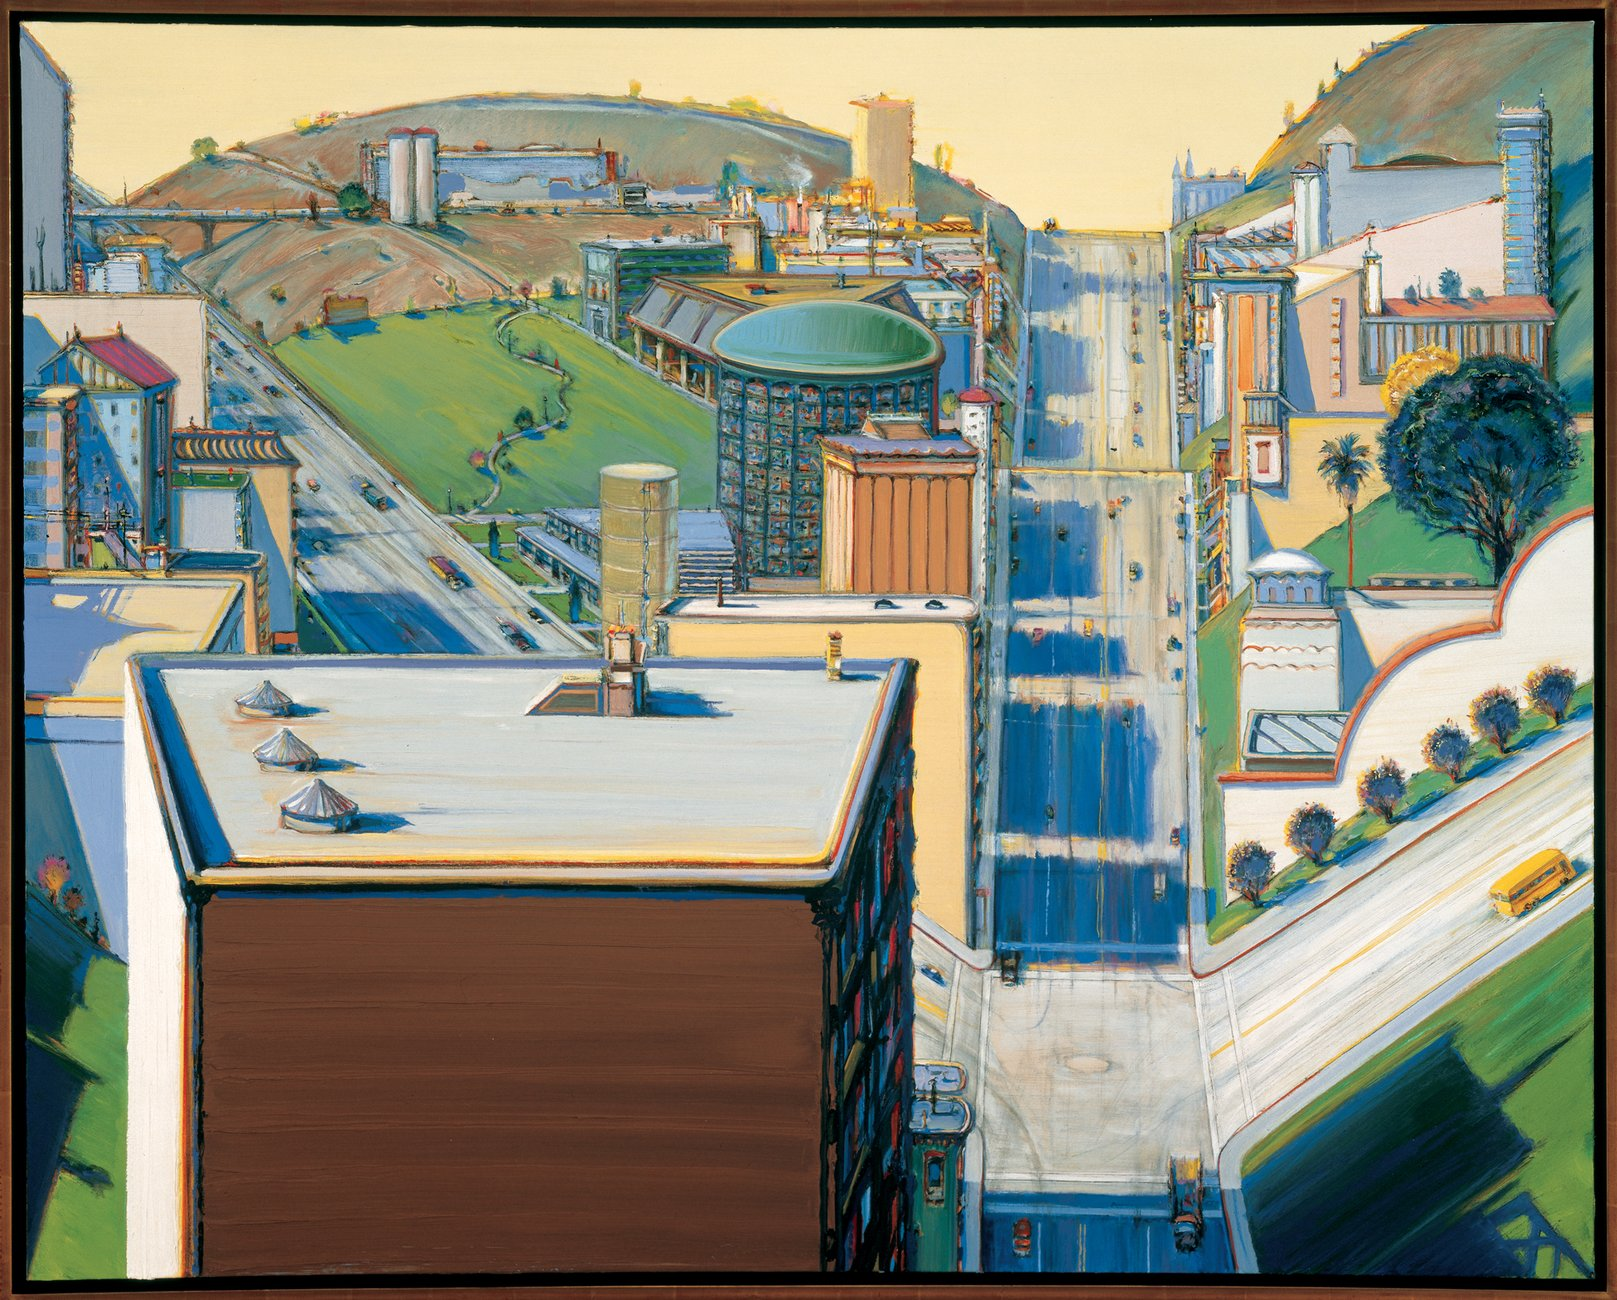 Artwork image, Wayne Thiebaud's Valley Streets